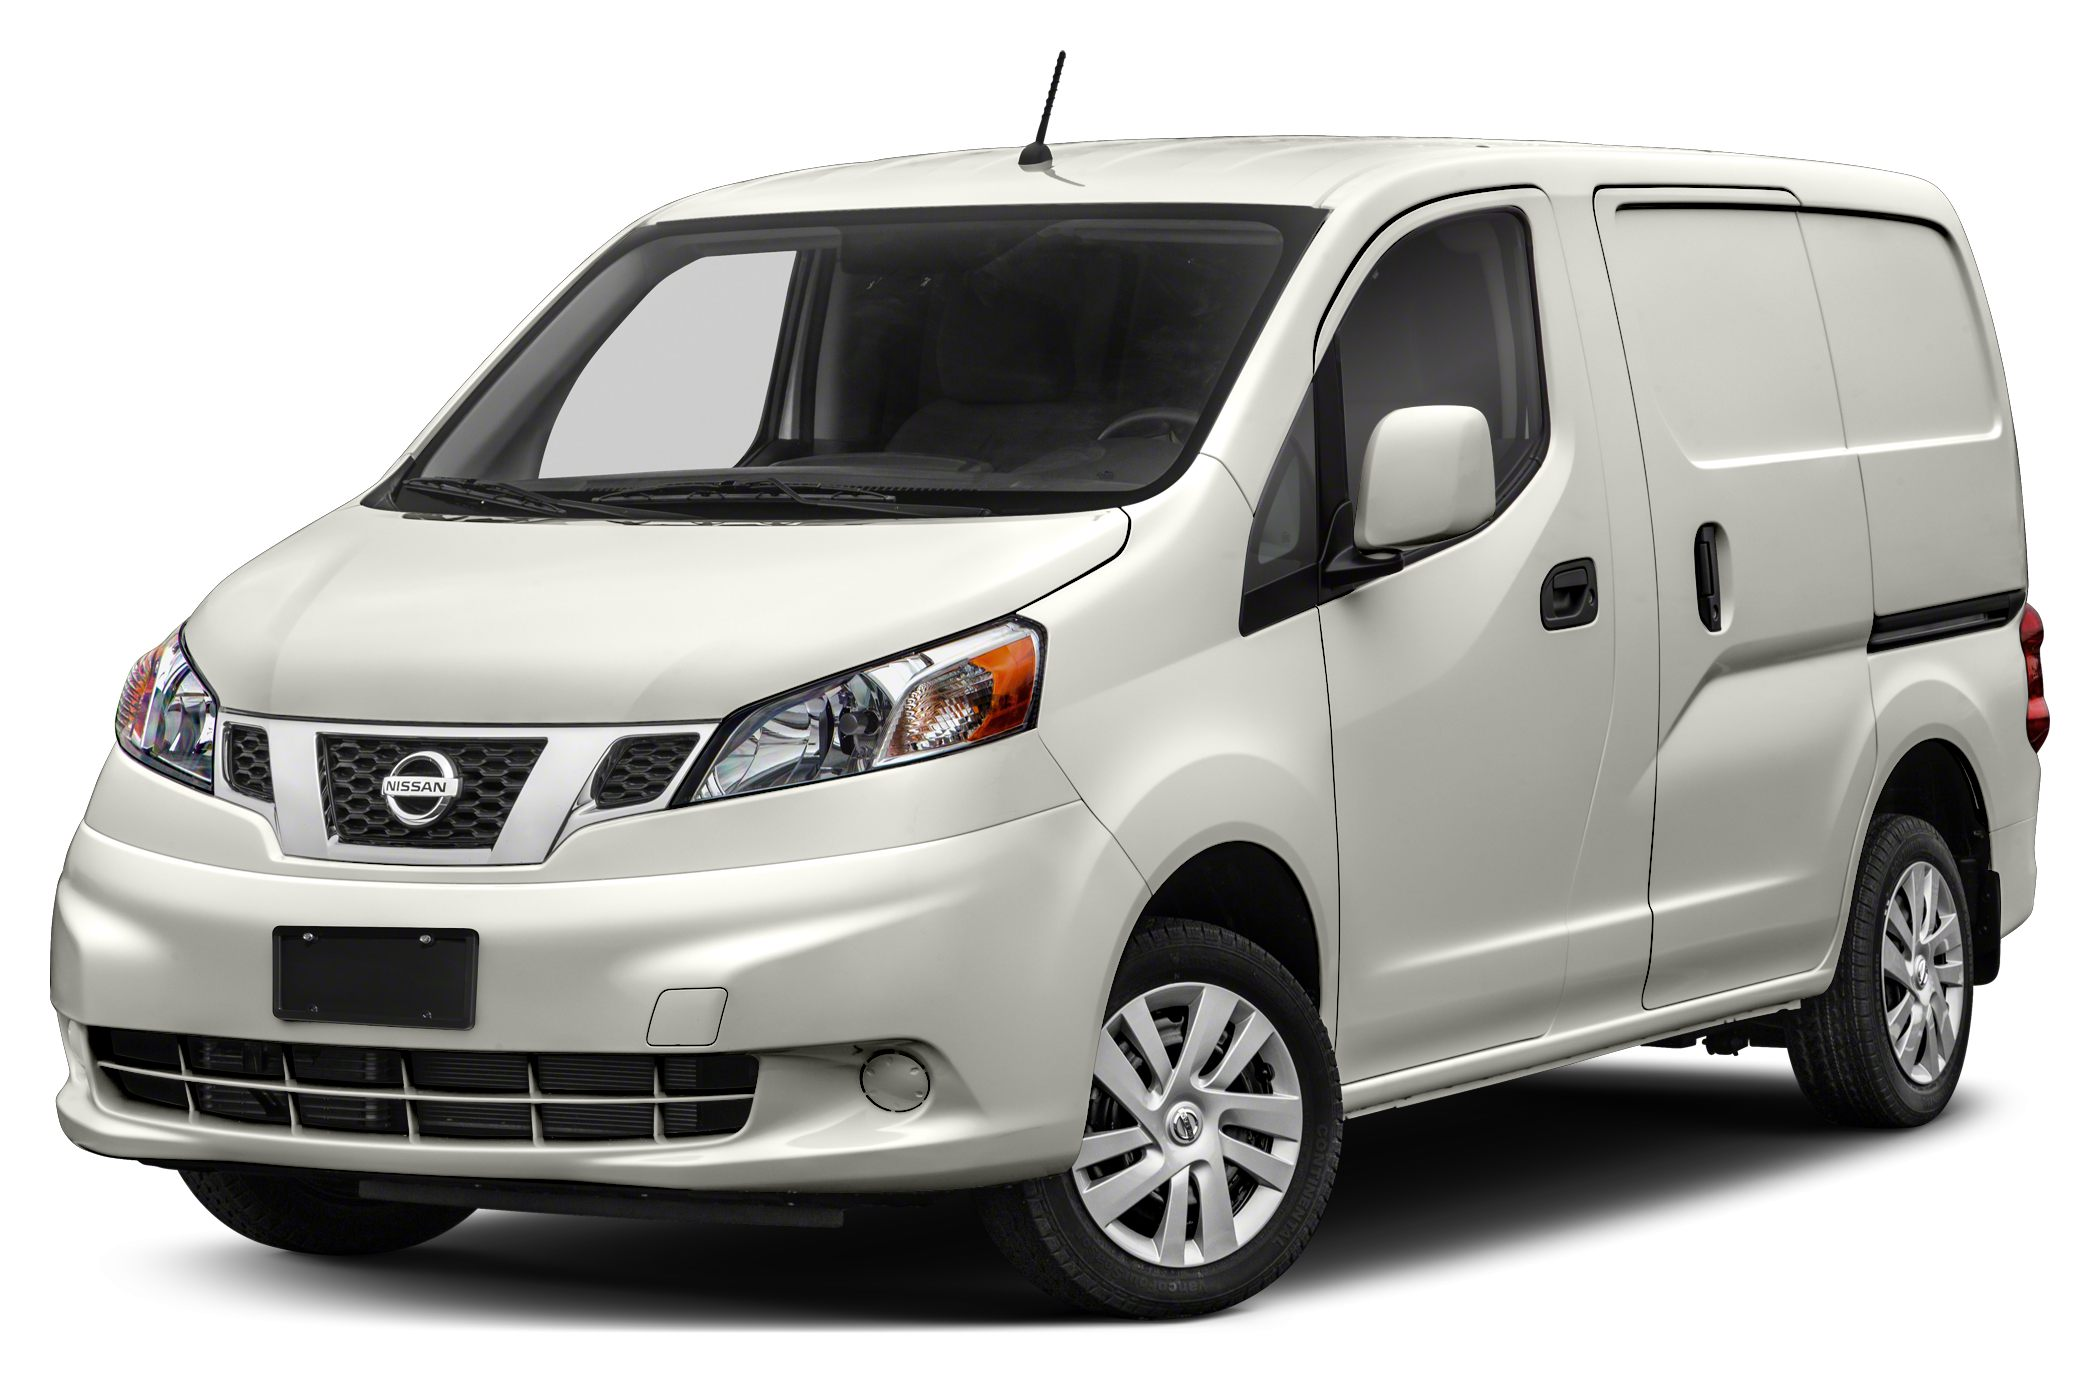 2020 Nissan Nv200 S 4dr Compact Cargo Van Specs And Prices